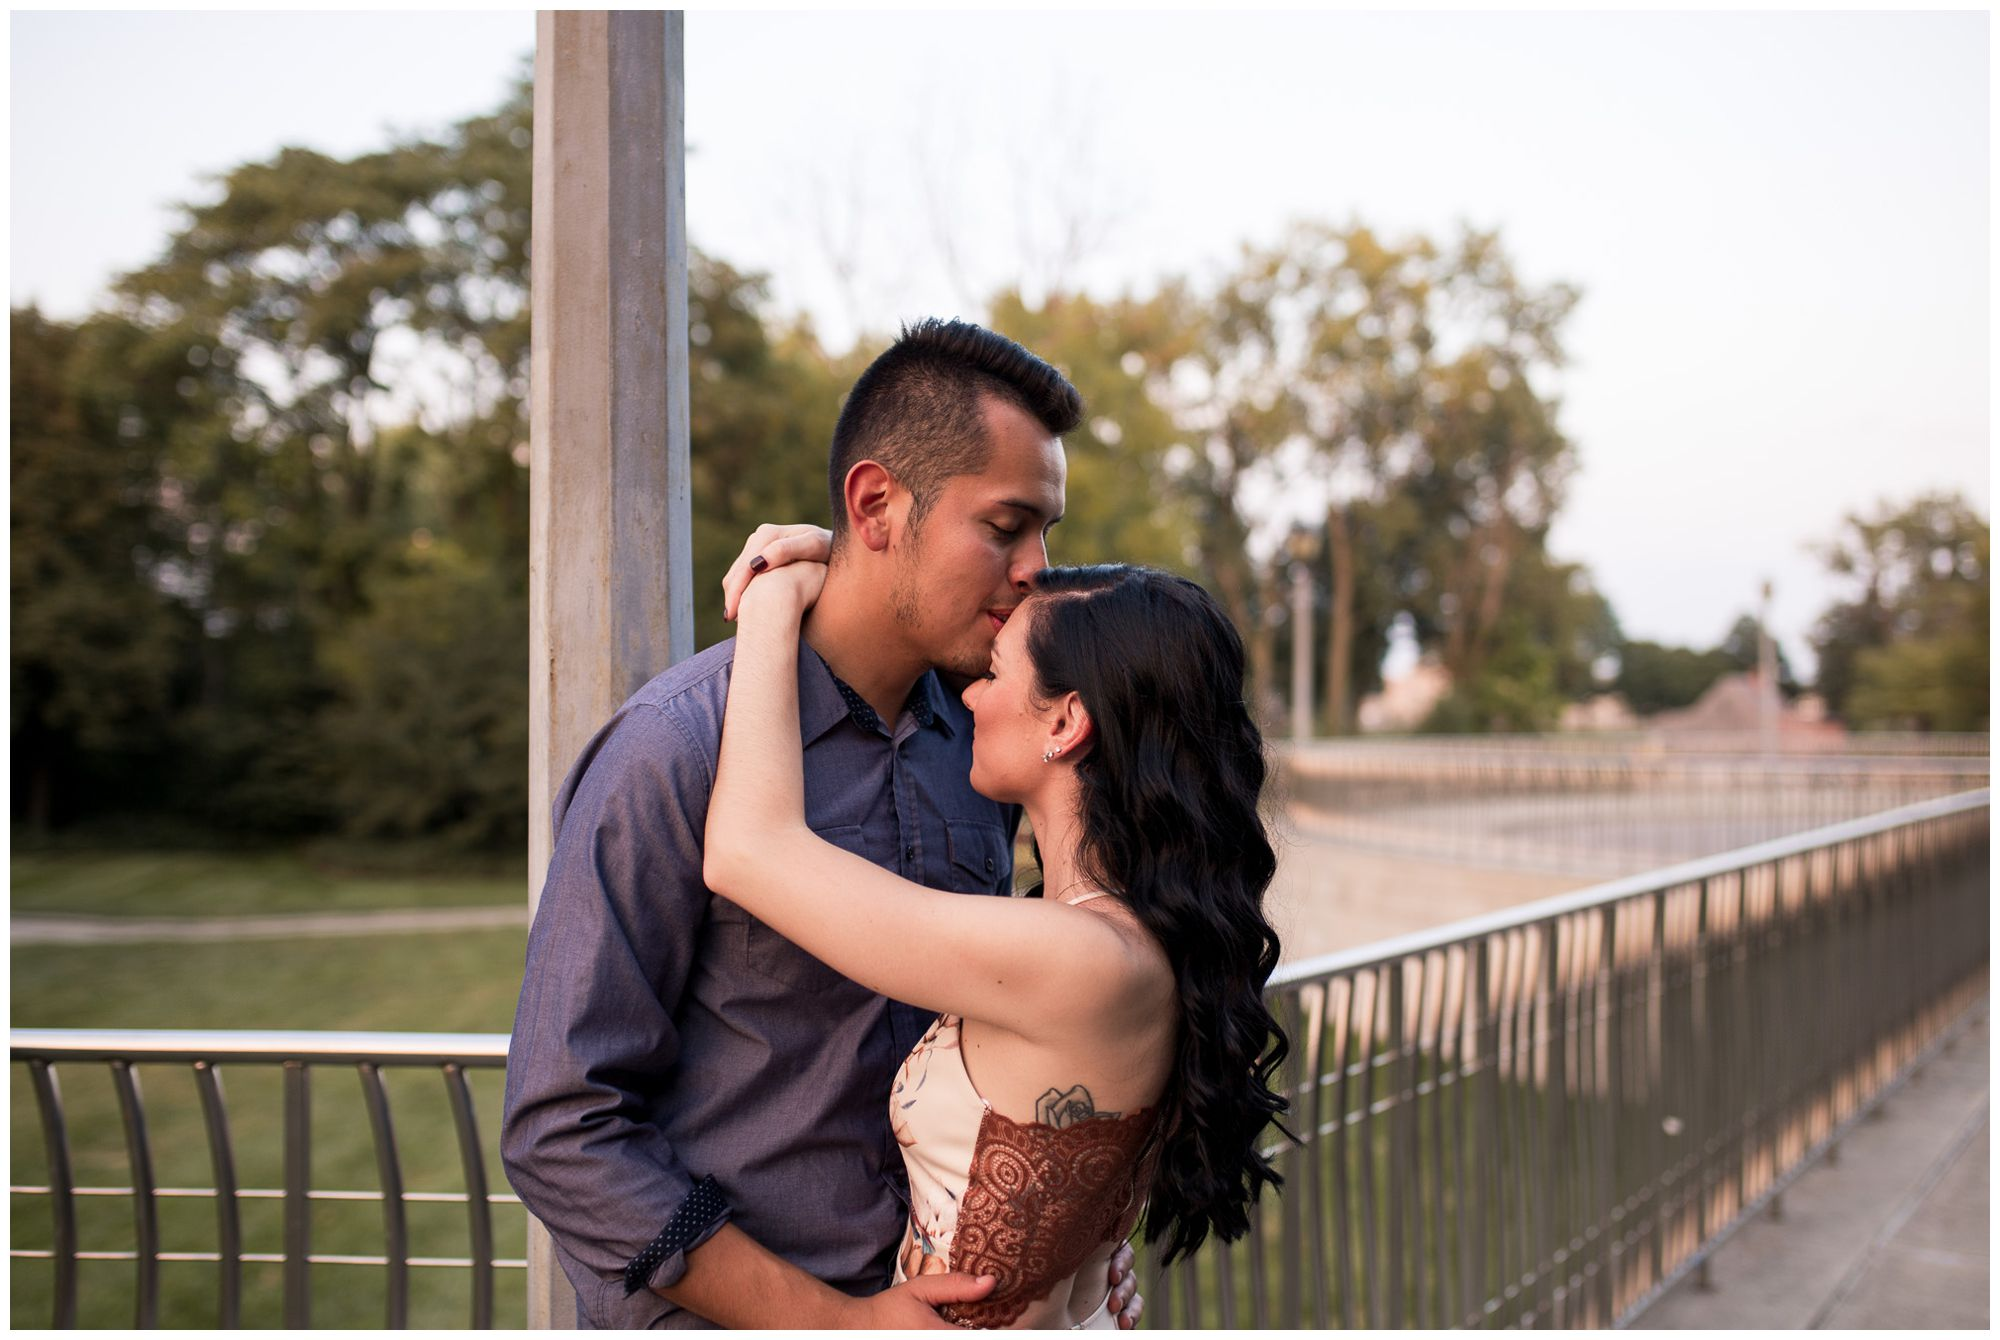 groom kisses bride's head during engagement session at Headwaters Park in Fort Wayne